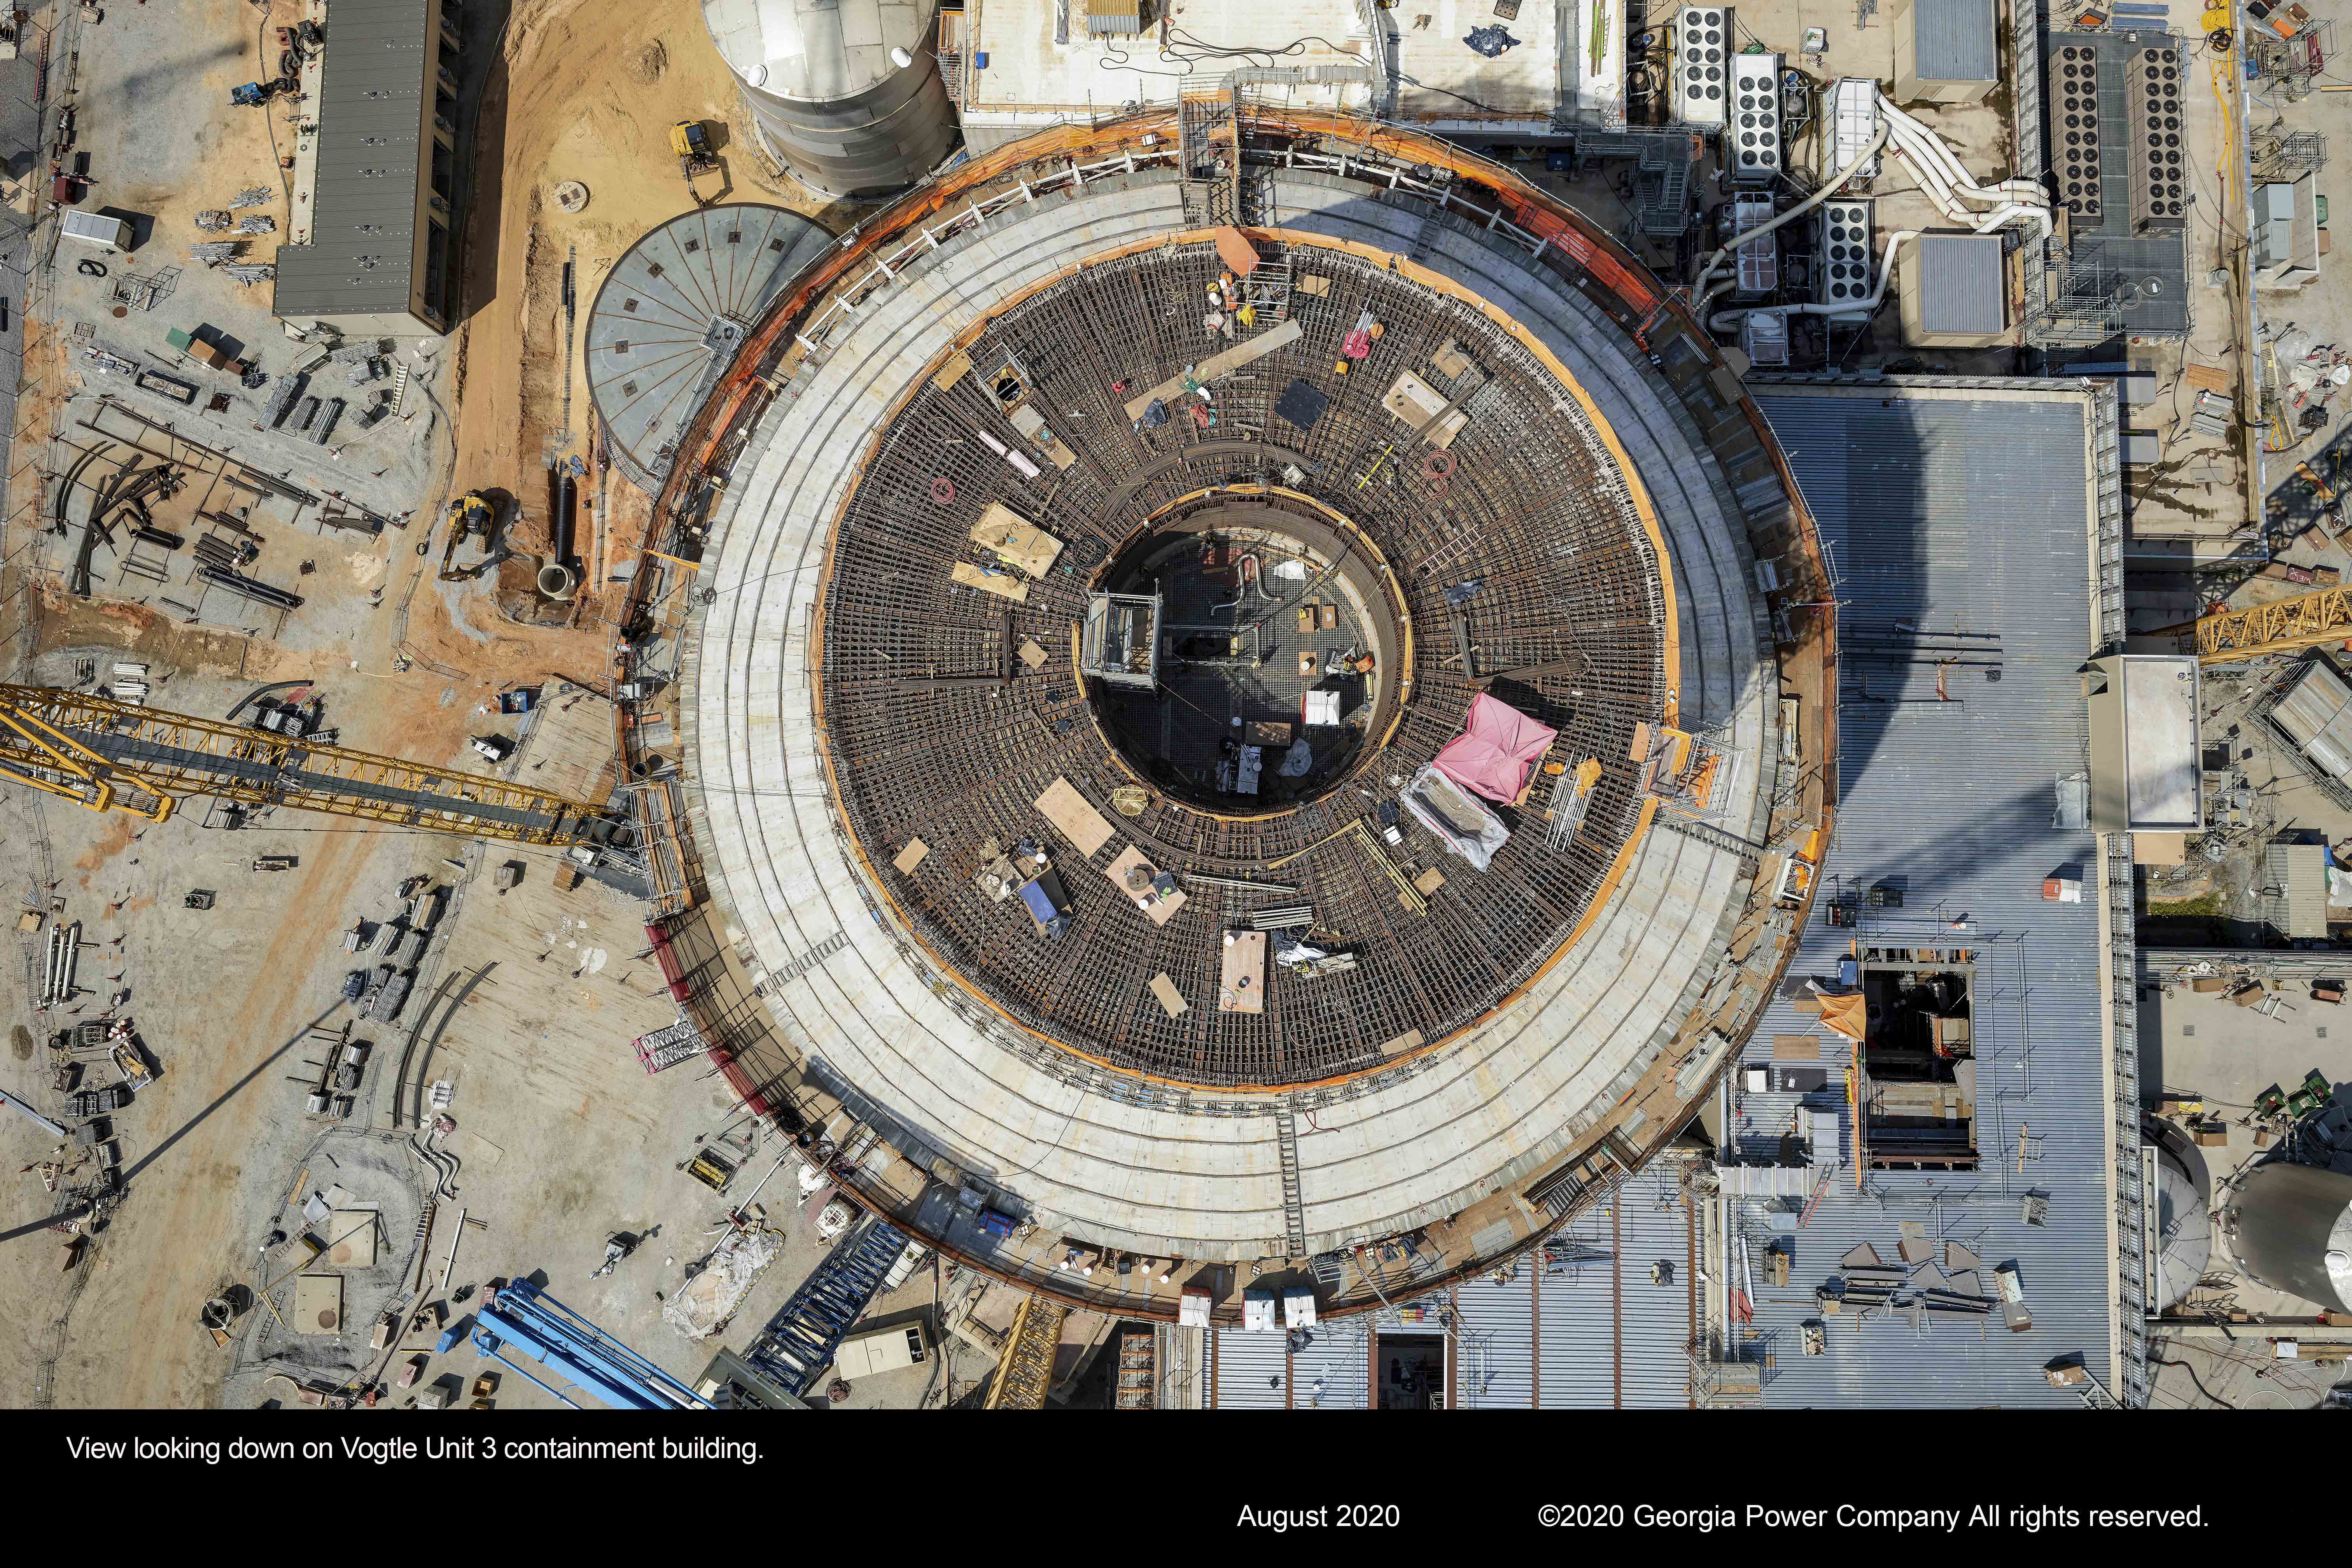 View looking down on Vogtle Unit 3 containment building